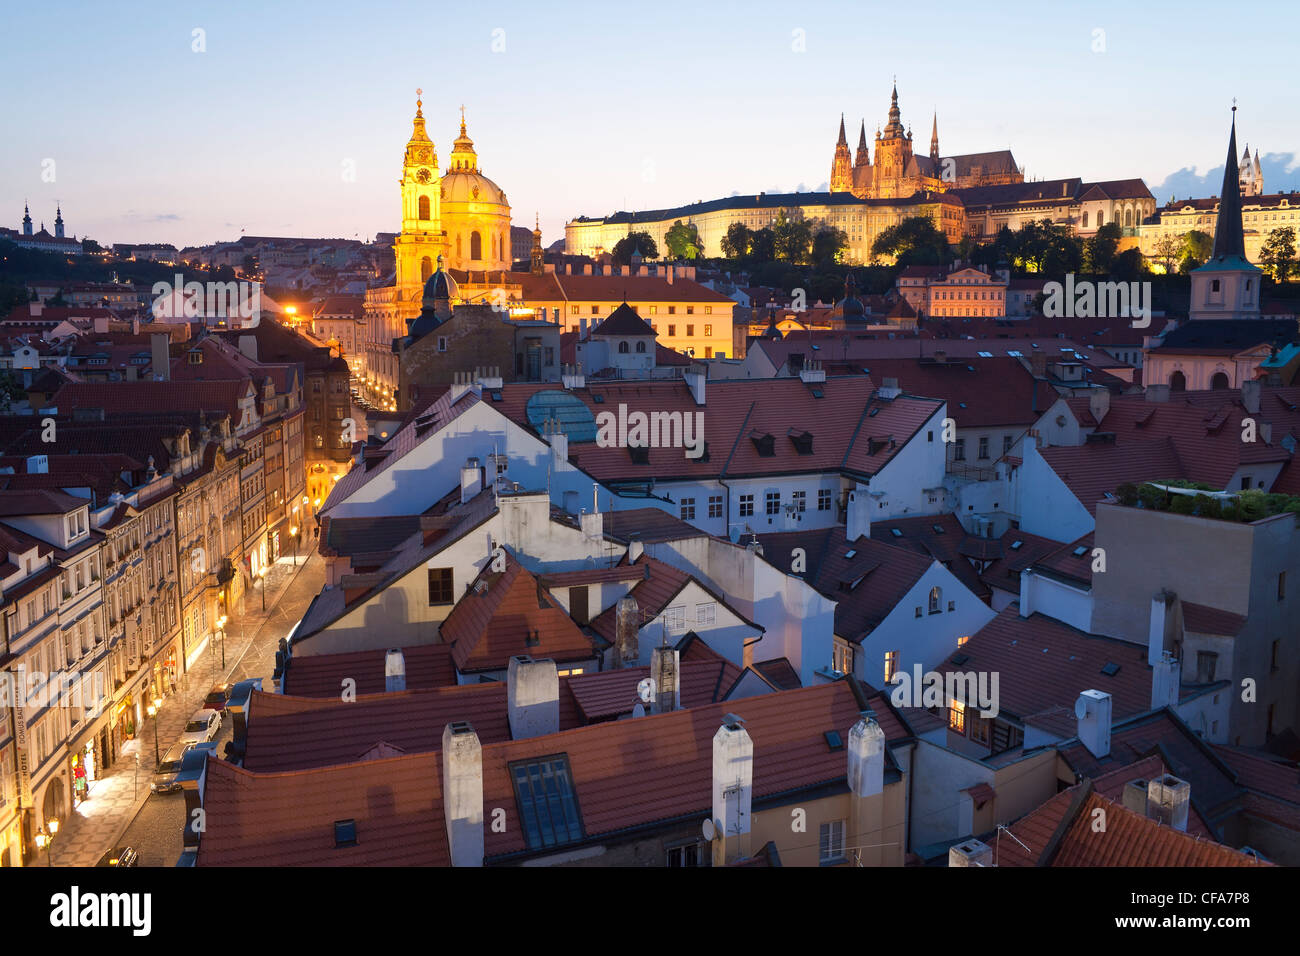 St. Vitus Cathedral and the Castle District at dusk, Prague, Czech Republic Stock Photo